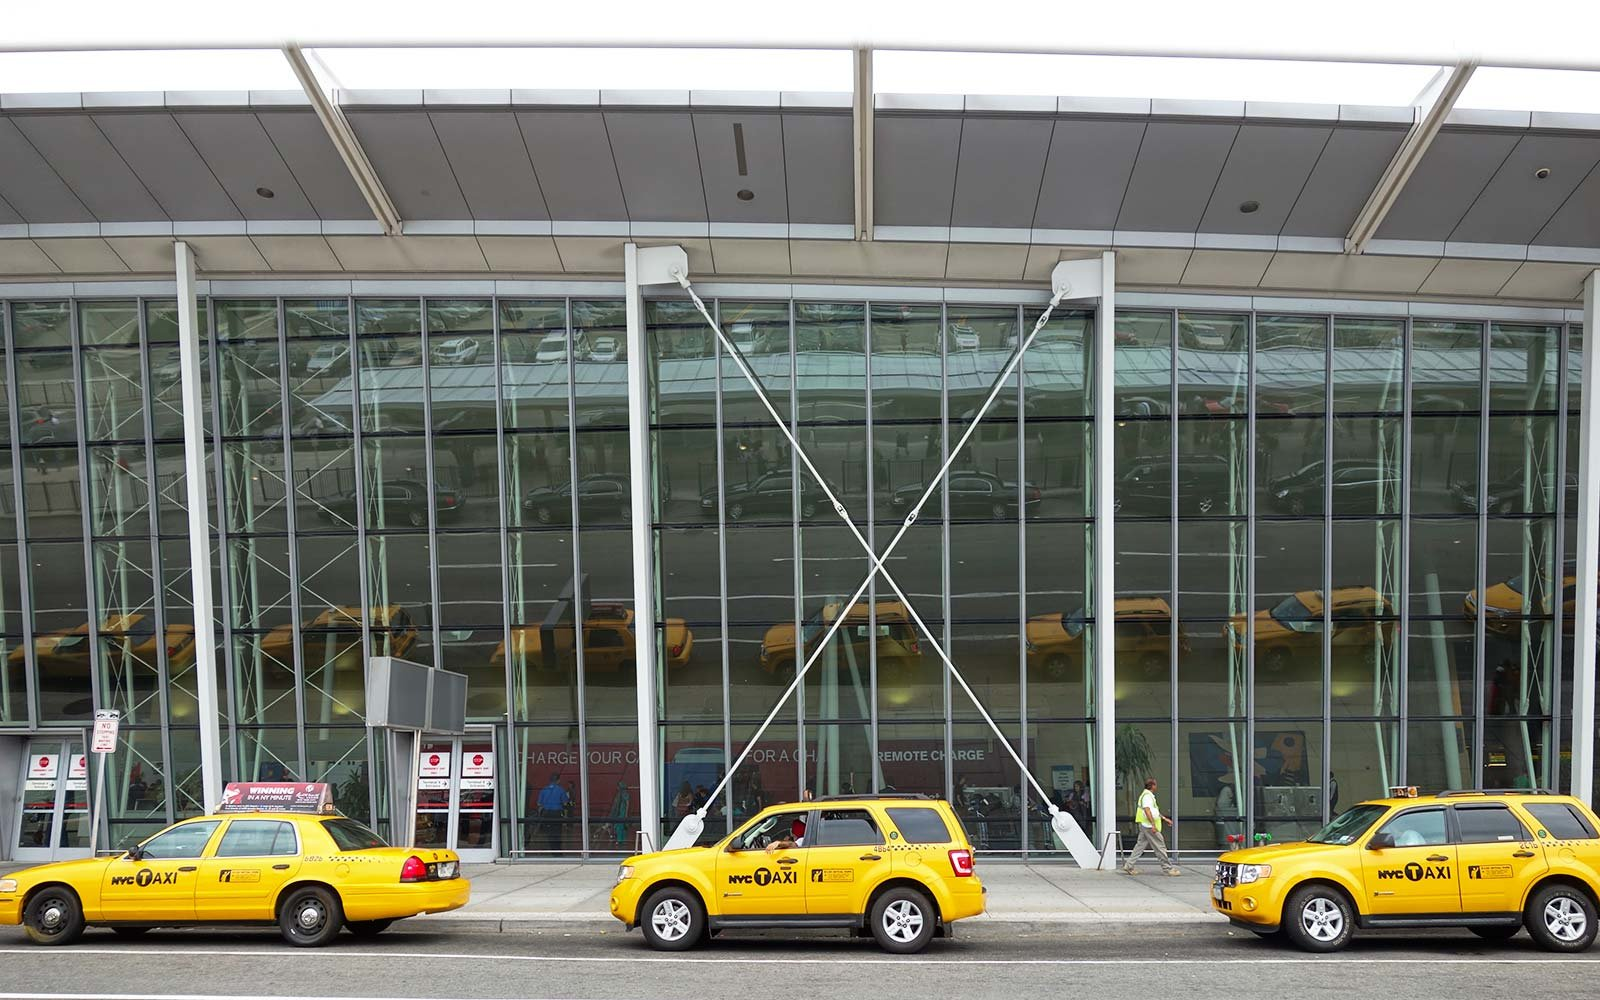 Taxis arrivals transportation JFK airport New York